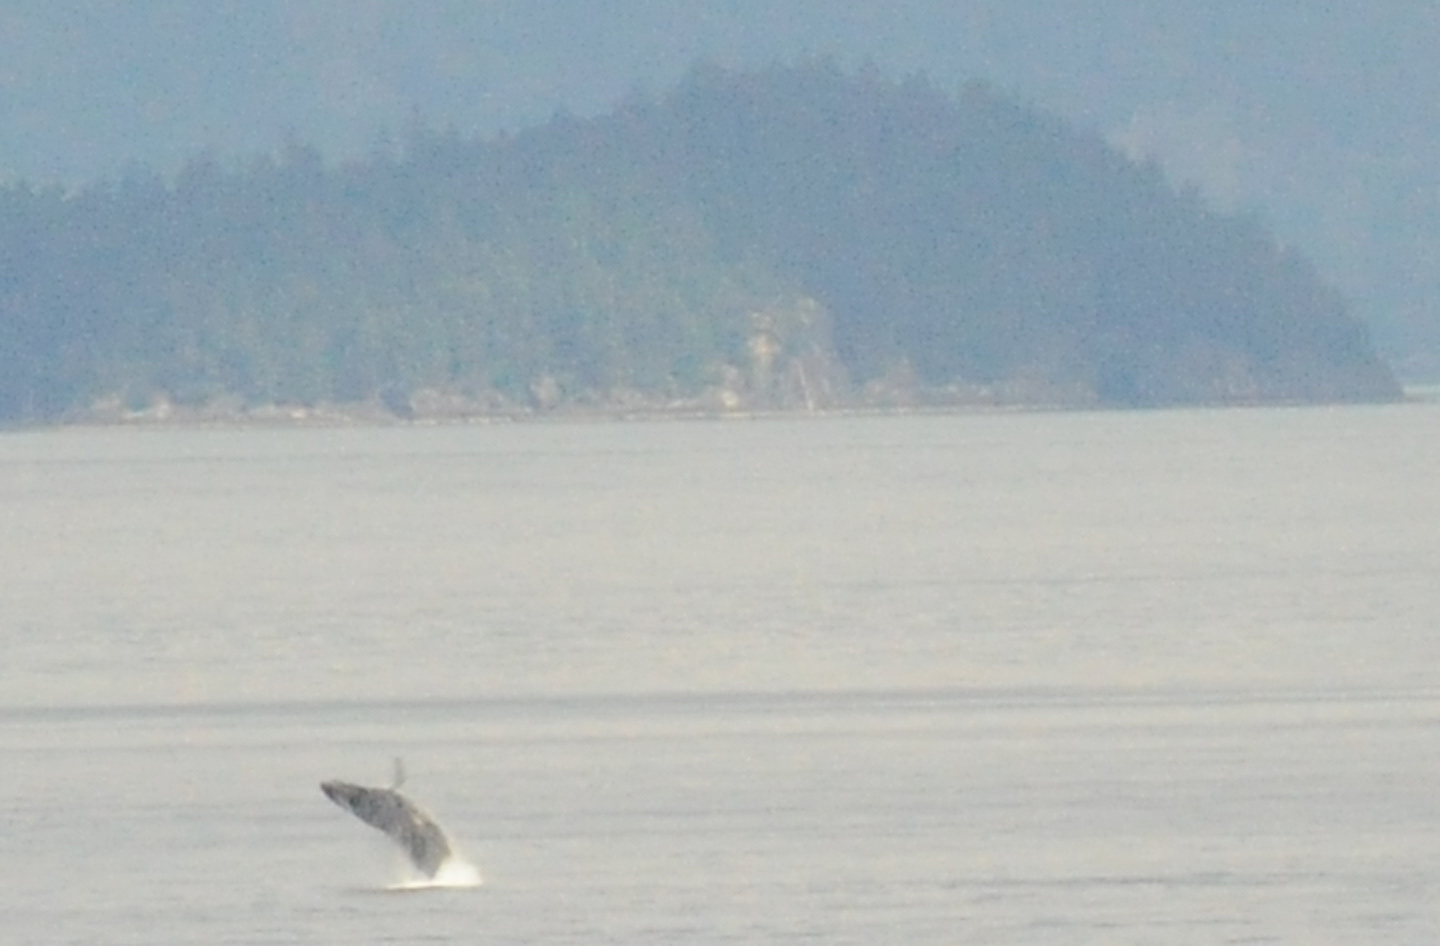 Humpback Whale in Howe Sound